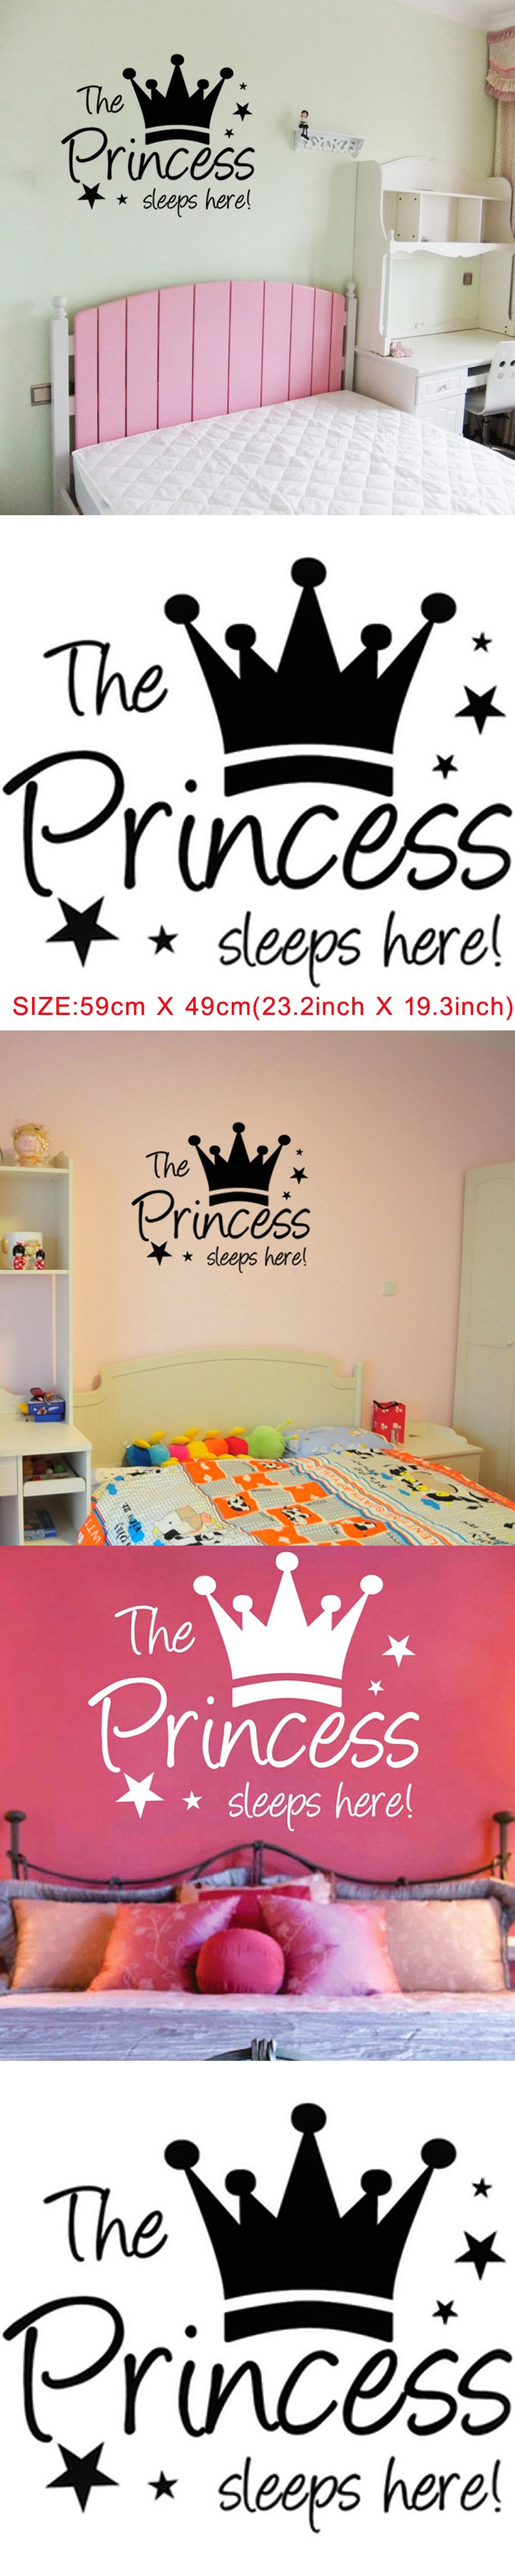 The Princess Sleeps Here Girls Wall Sticker Cute Crown DIY Home - How to make vinyl wall decals with cricut